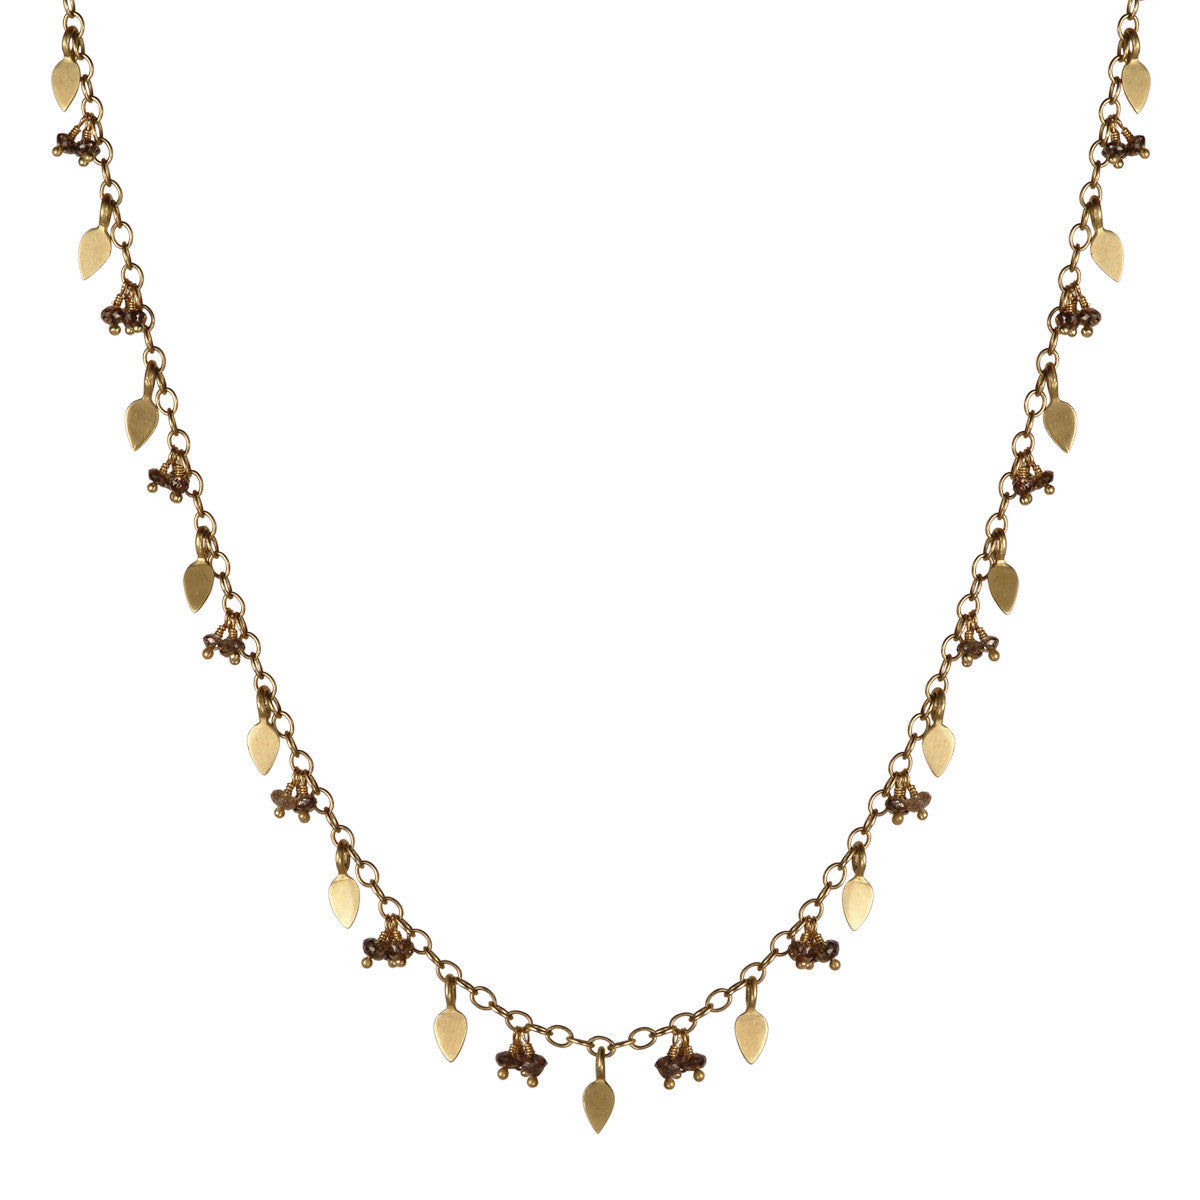 18K Gold 1 Tier Tiny Petal & Bead Chain with Brown Diamonds